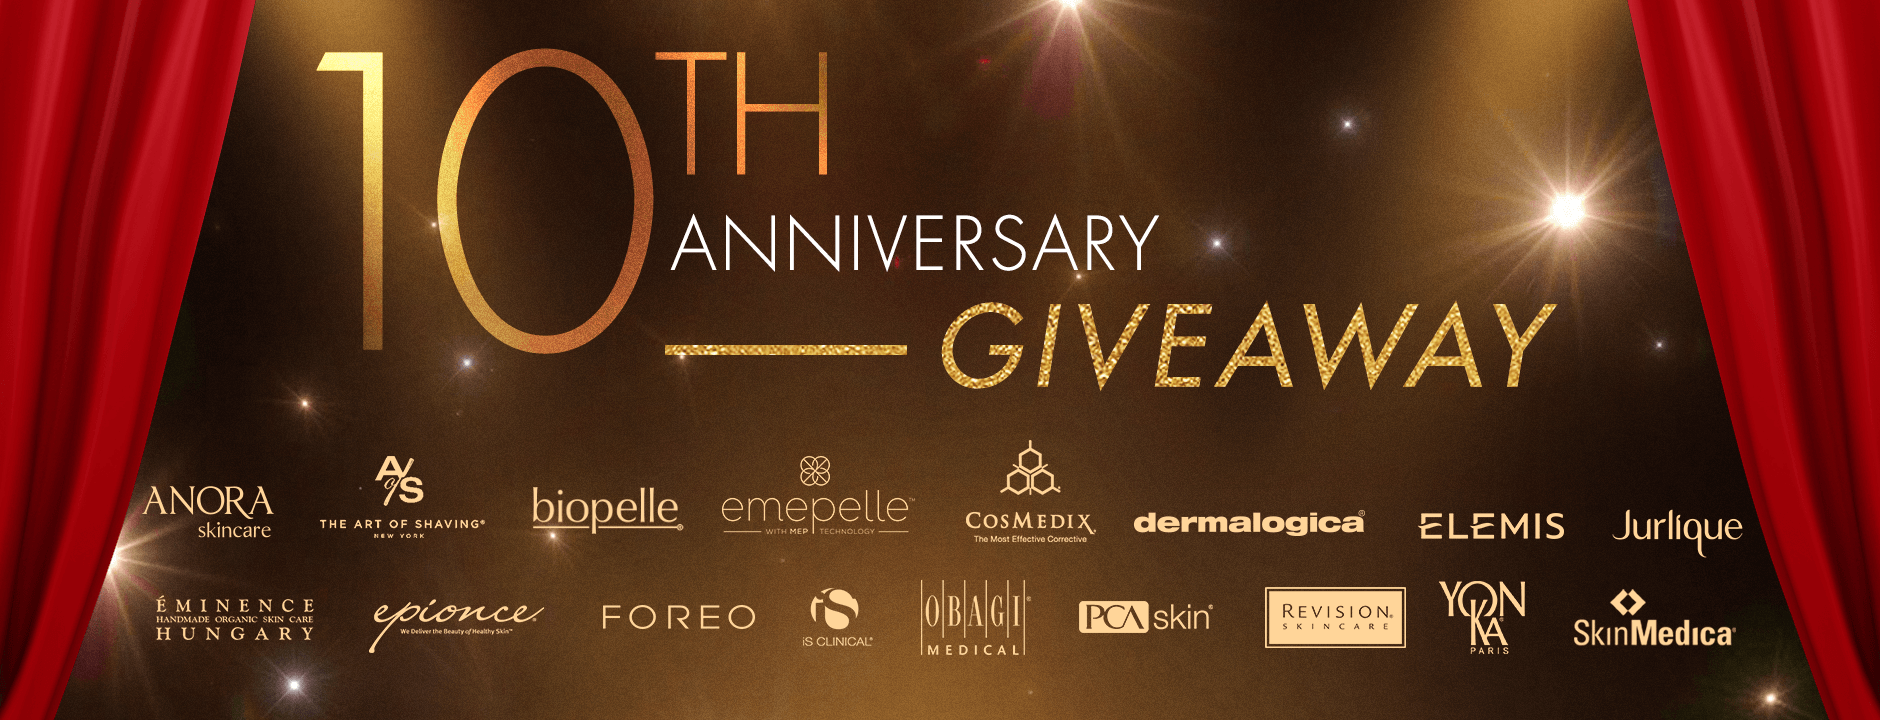 10-yr-anniversary-giveaway-1880x720.png